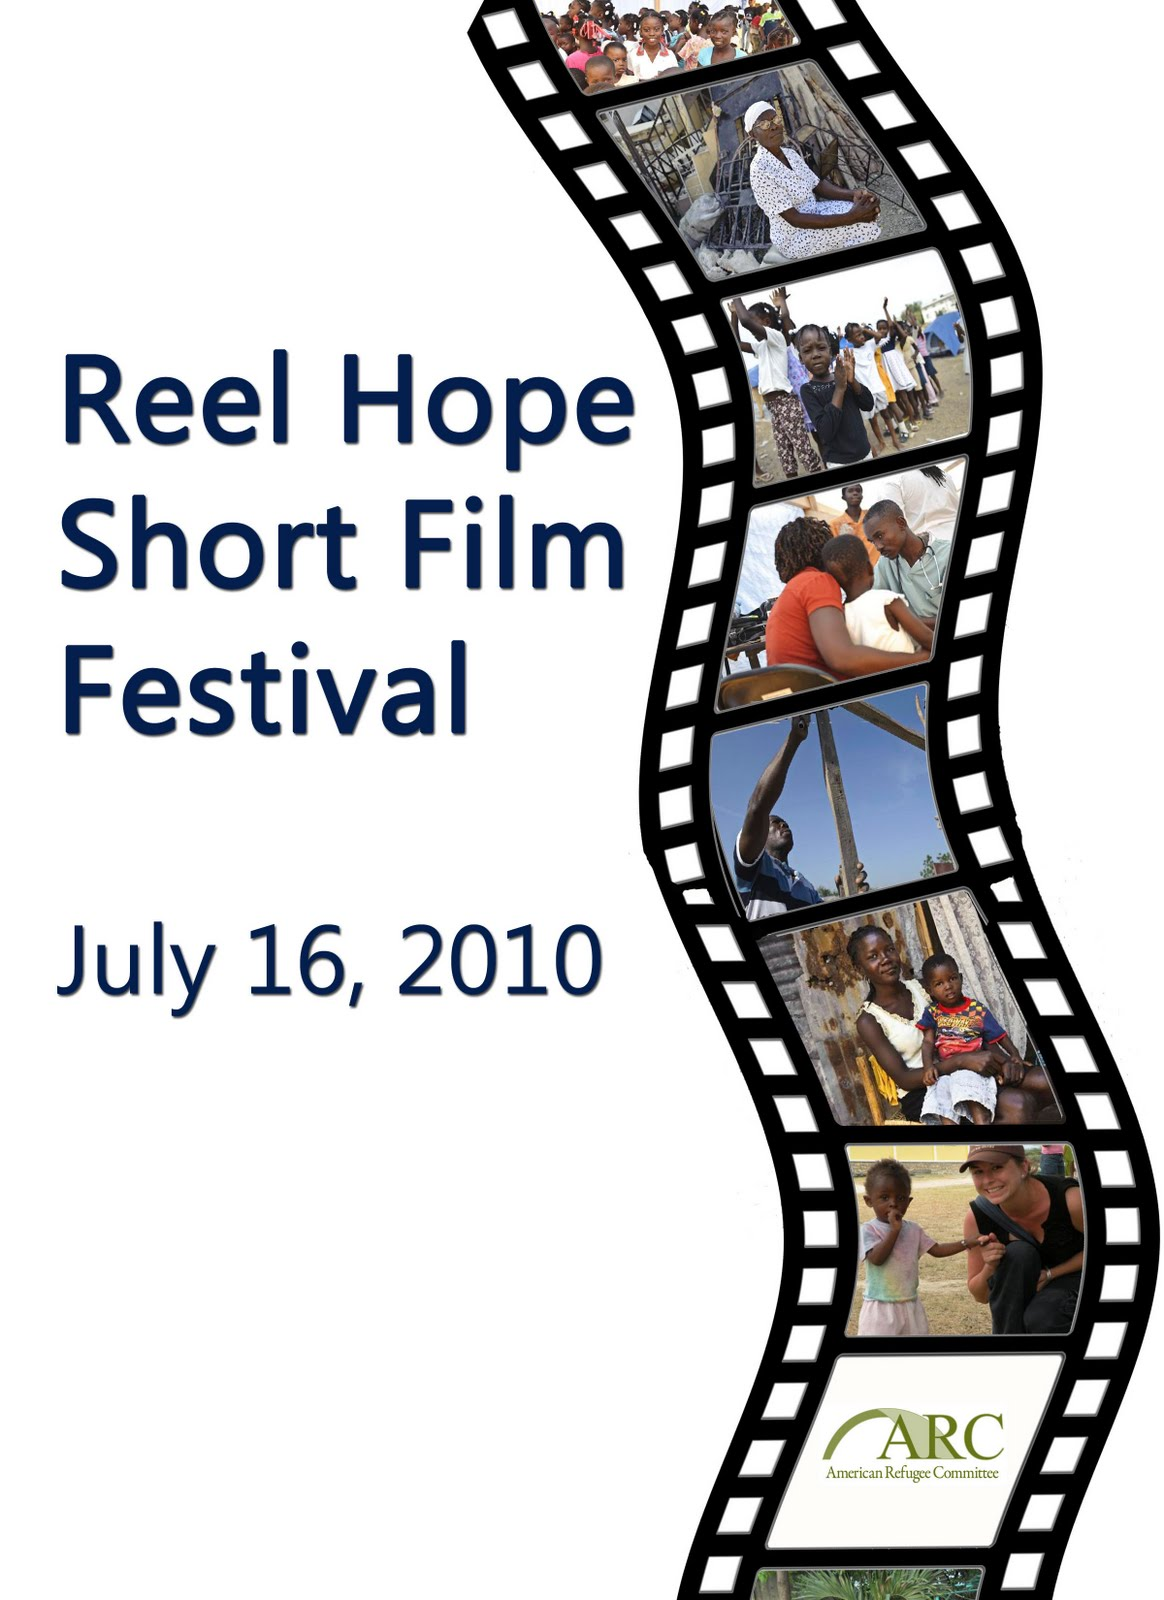 Reel hope short film festival